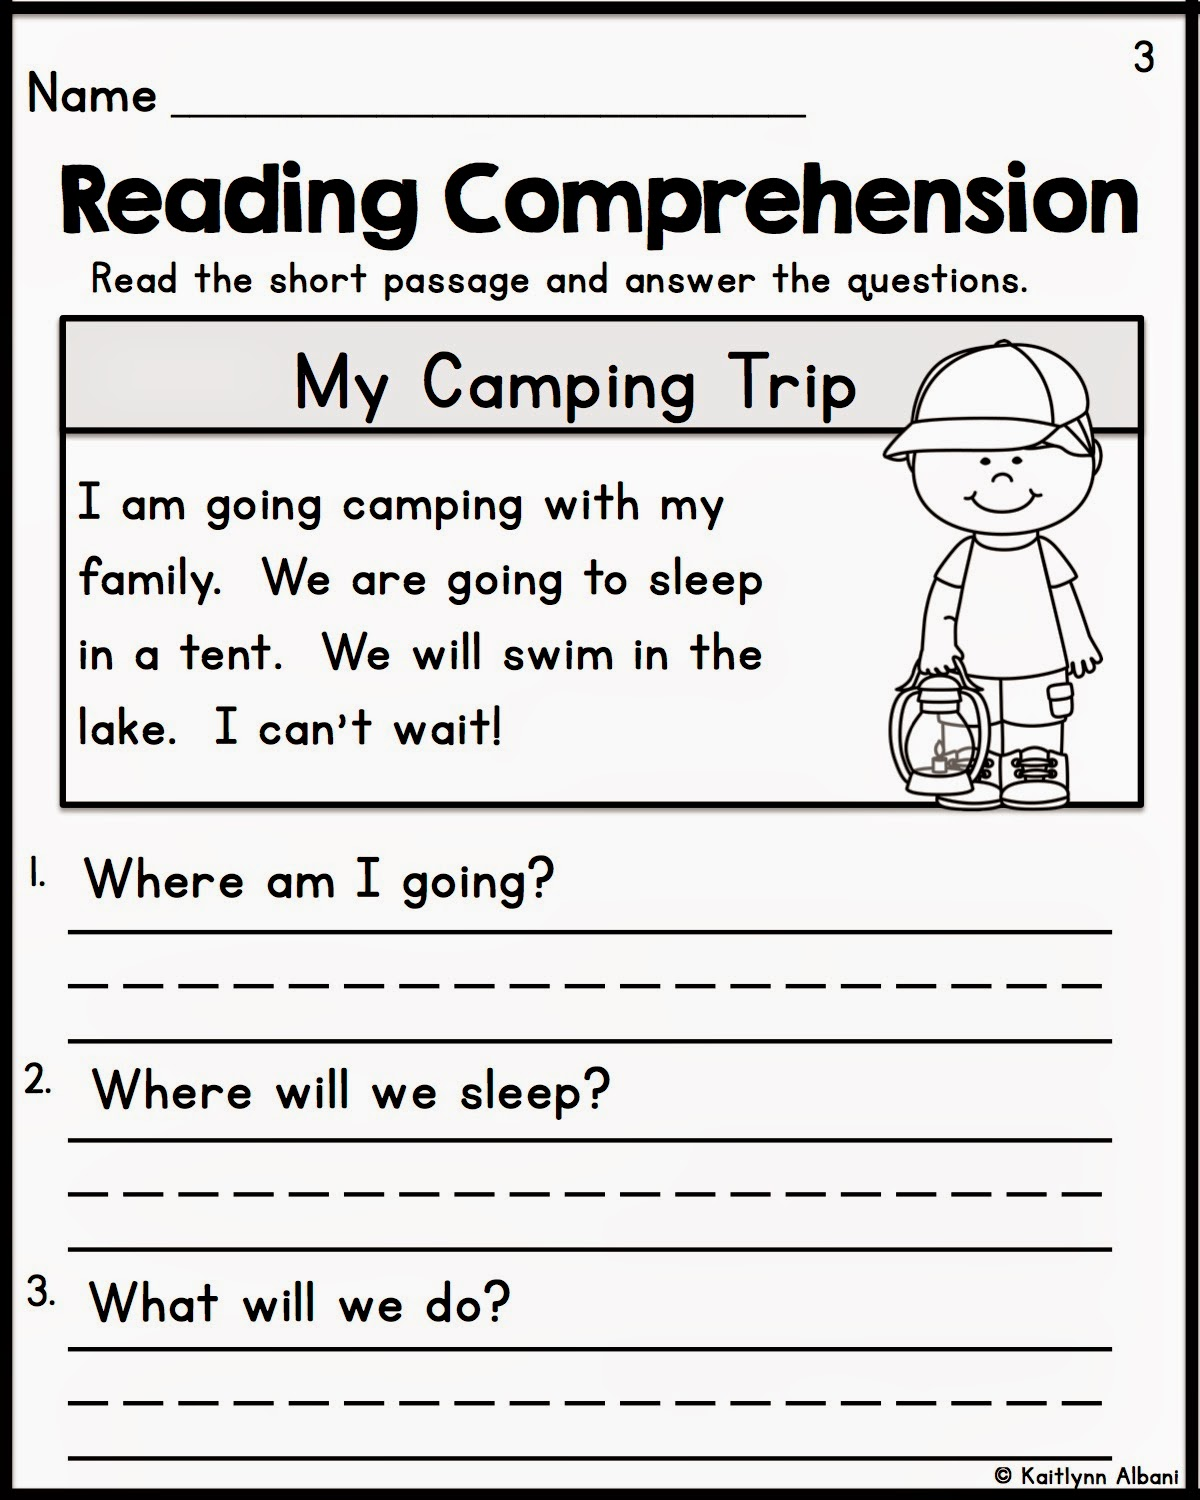 Third Grade Comprehension Worksheets – Third Grade Reading Comprehension Worksheets Multiple Choice